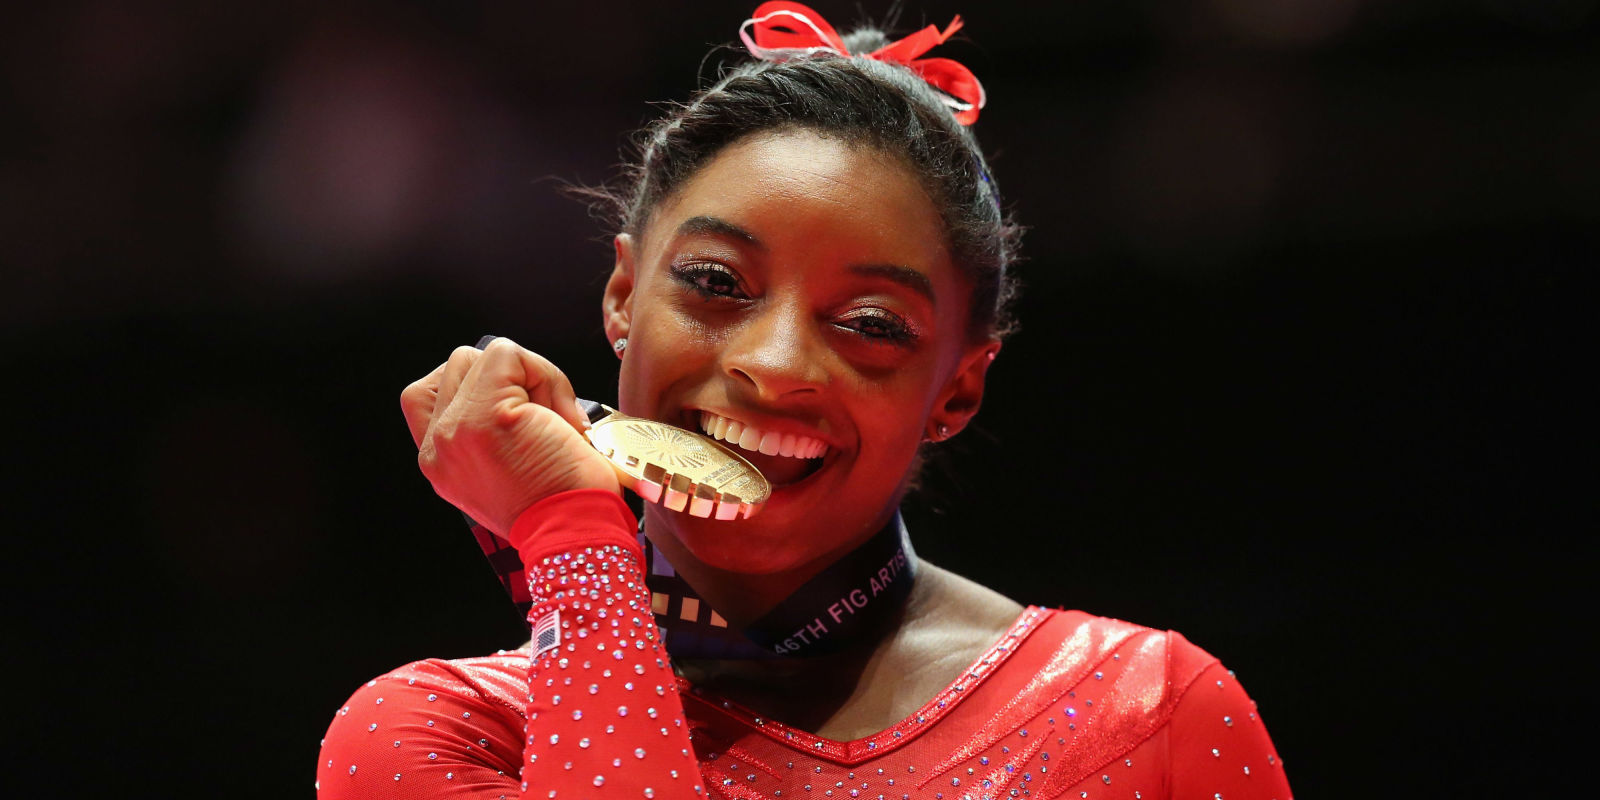 Response to a twitter troll who shamed her for not wearing makeup - Simone Biles Had The Best Response To A Troll Who Called Her Trash